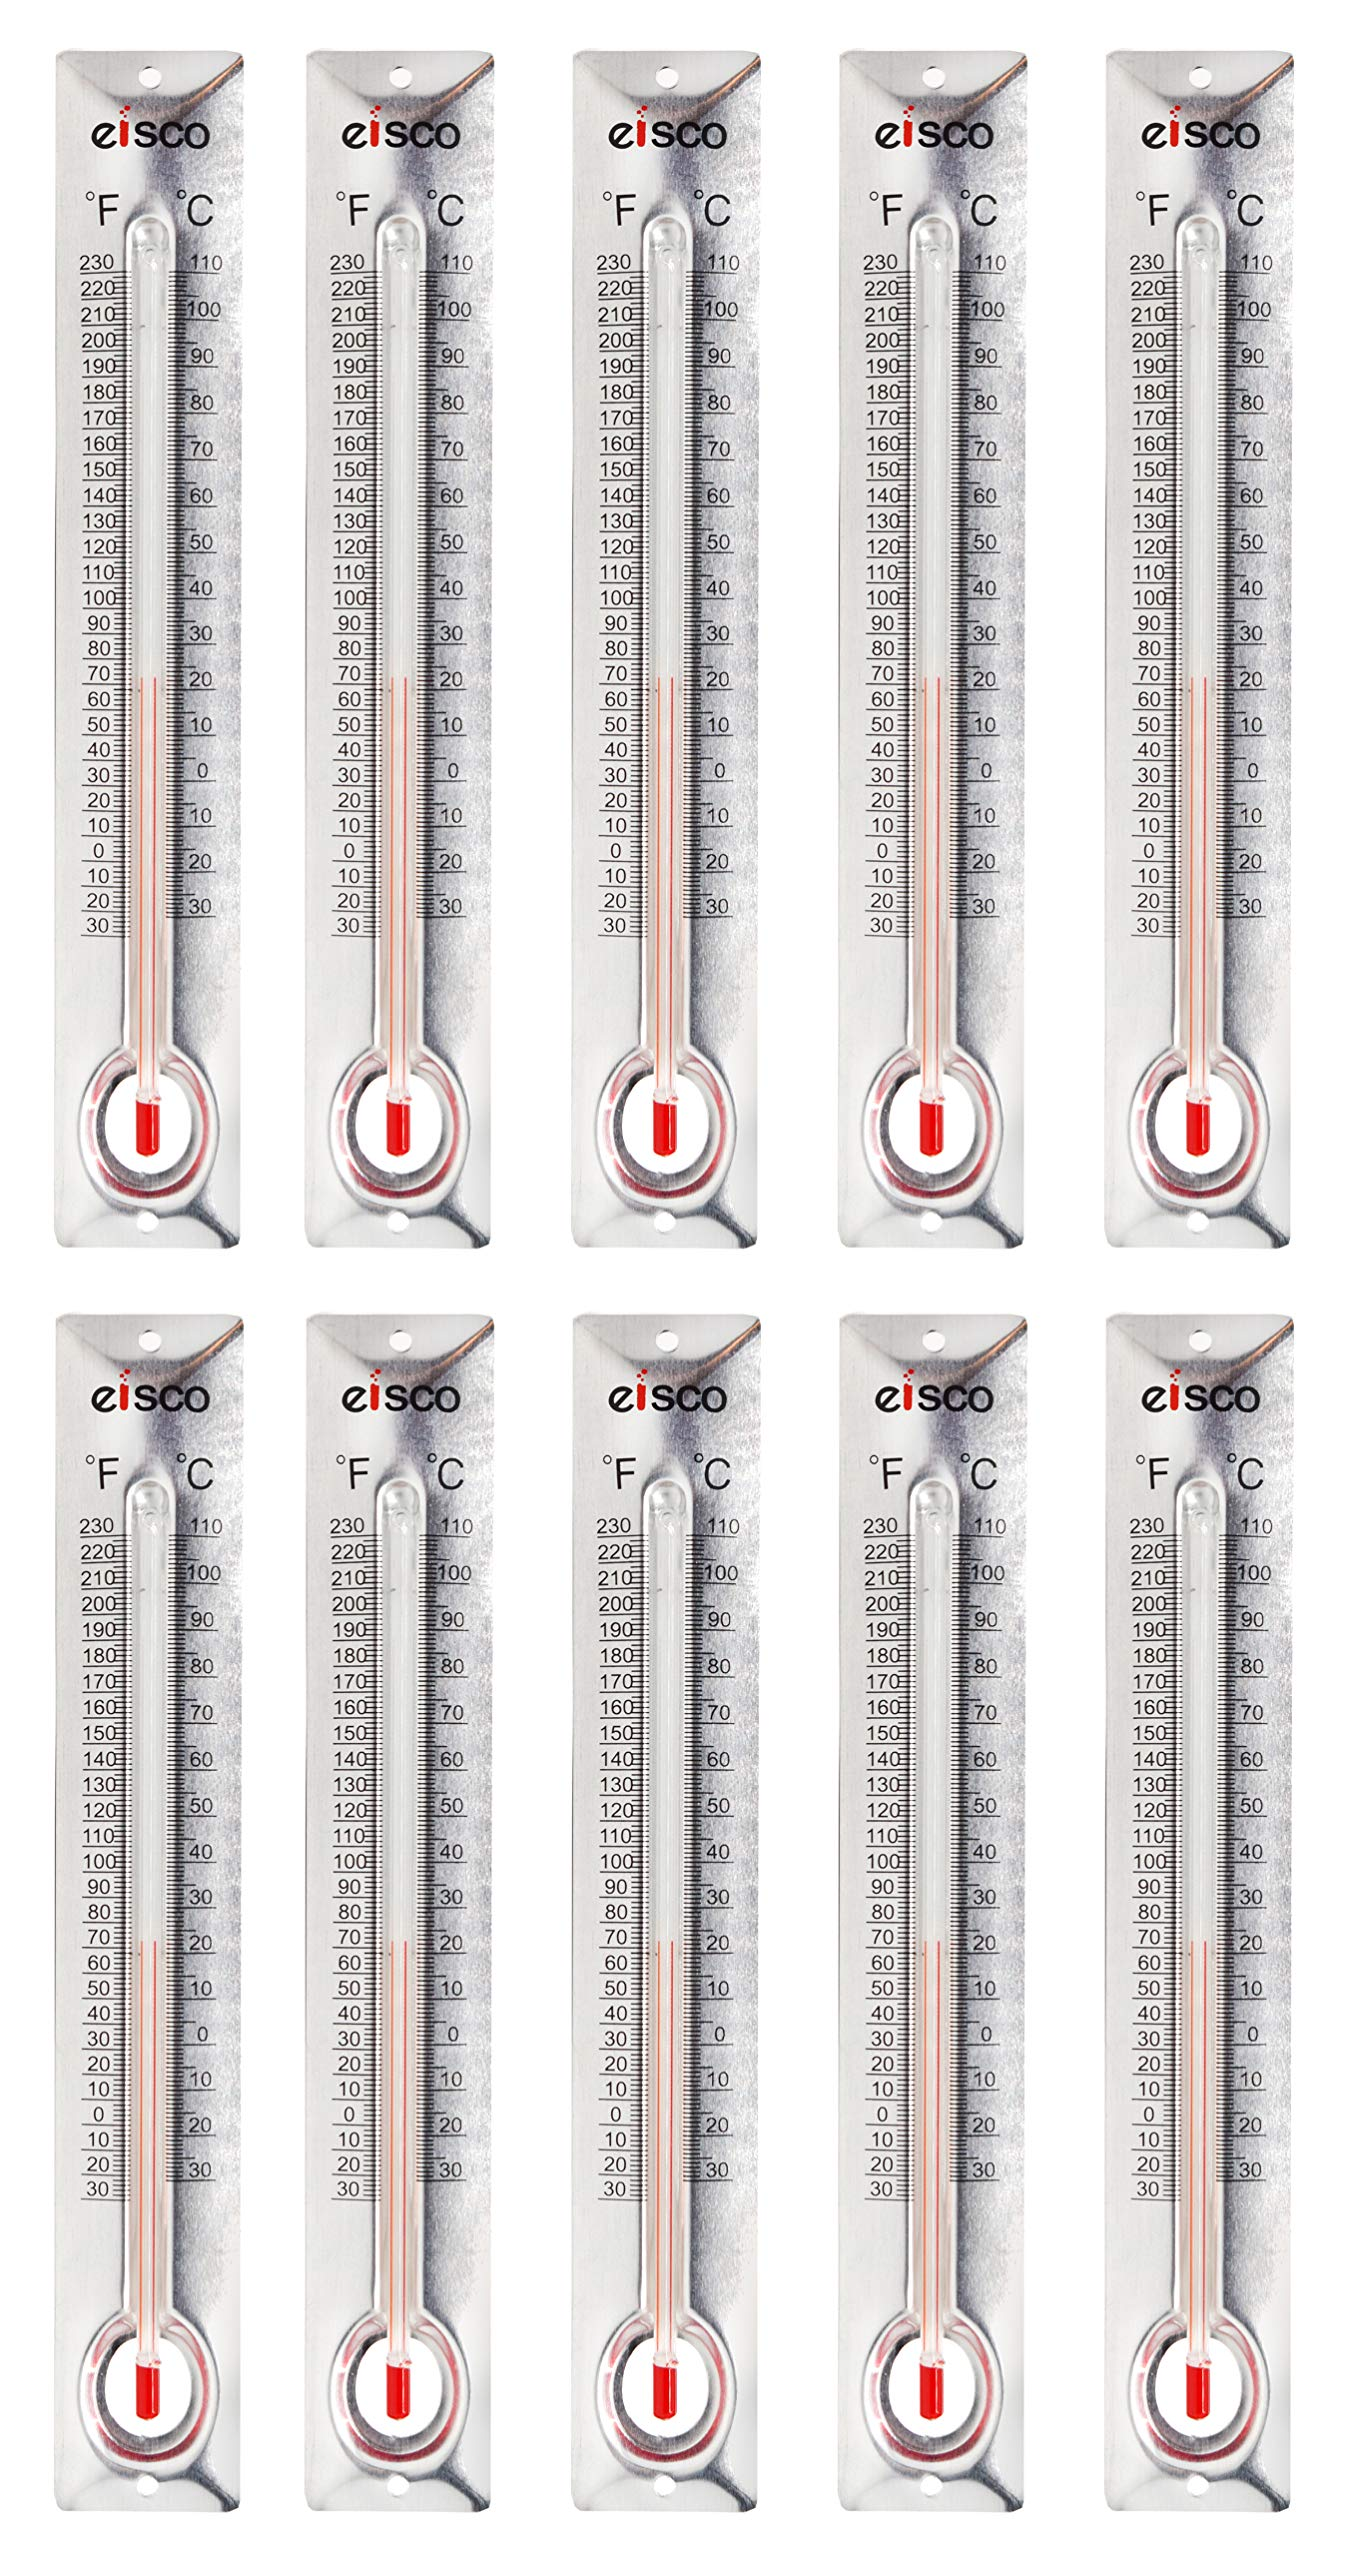 10 Pack - Aluminum Thermometers, -30 to 110°C / 30 to 230°F, Measurement in Celsius & Fahrenheit - Aluminum Backing, Glass - Spirit Filled - 6.5'' Long, 1'' Wide - Eisco Labs by EISCO